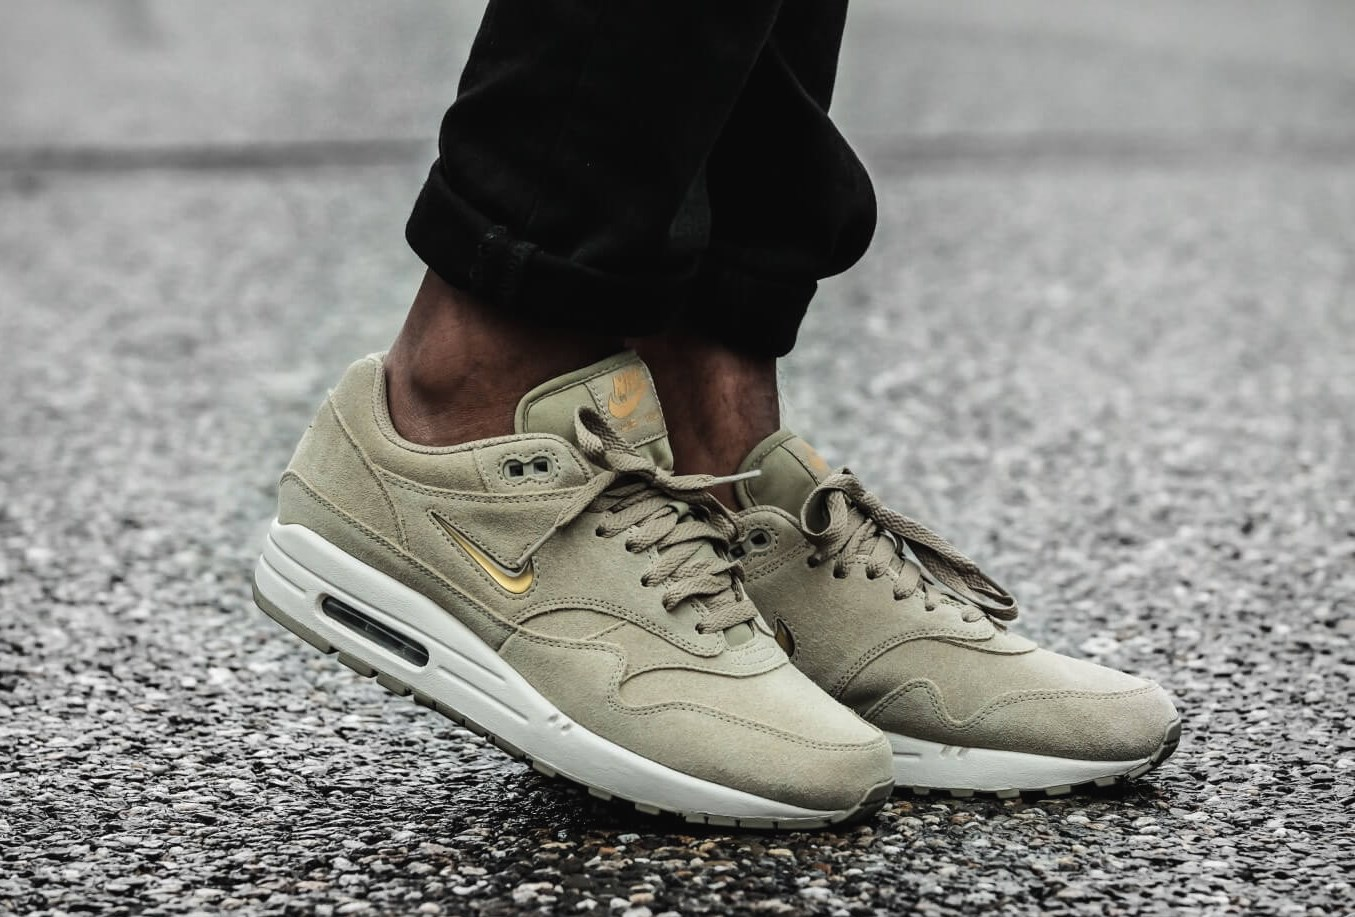 Details about Nike air max 1 Premium Sc Men's Sneaker 918354 201 Olive Green Sneakers Shoes